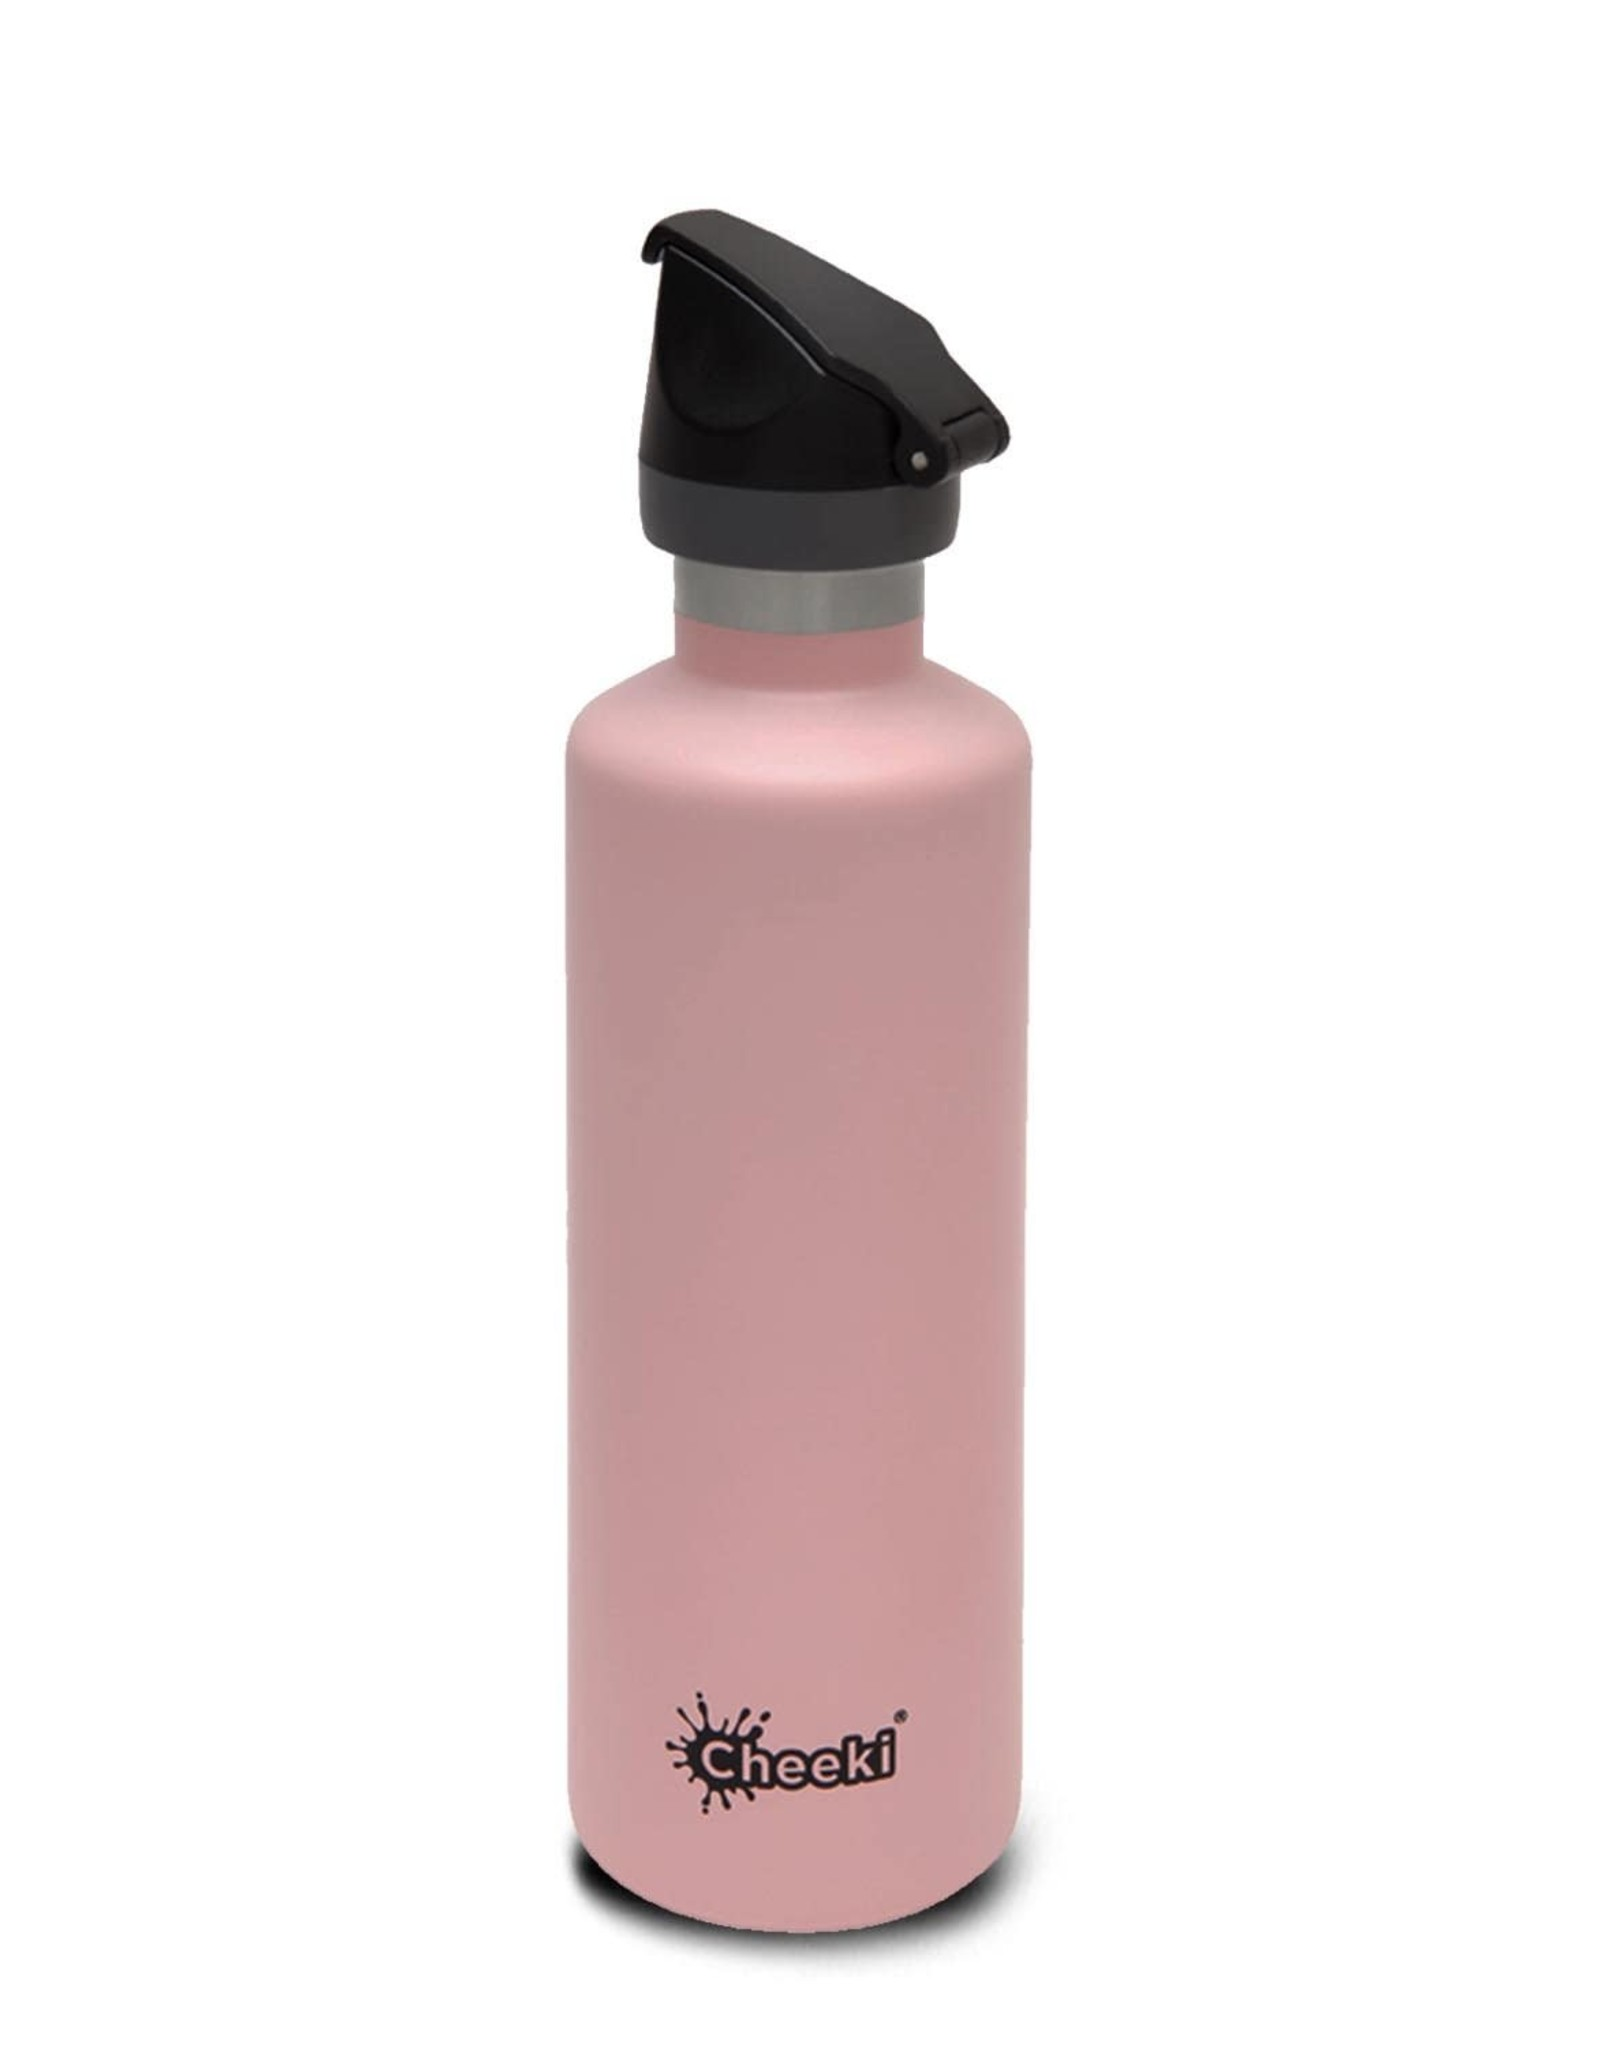 Cheeki Stainless Steel Bottle Insulated with Sports Lid 600ml